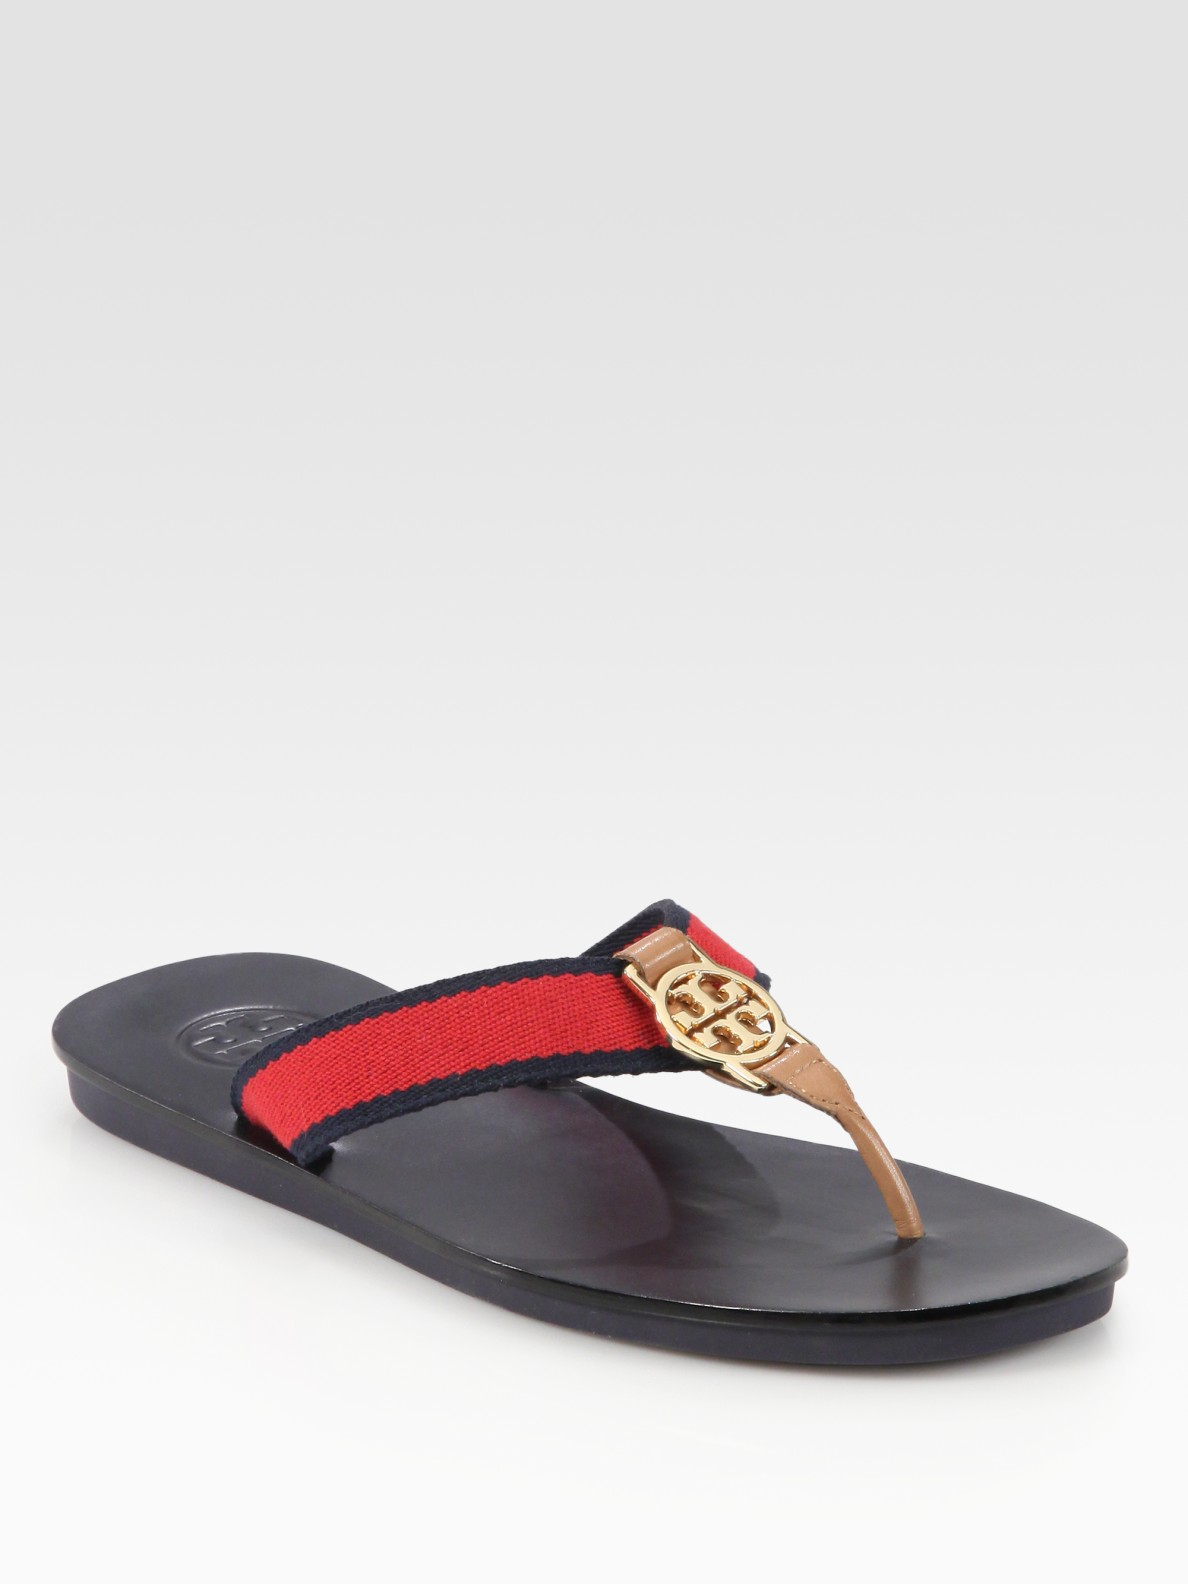 31b1f305c7f Lyst - Tory Burch Lise Leather-trim Canvas Logo Thong Sandals in Red